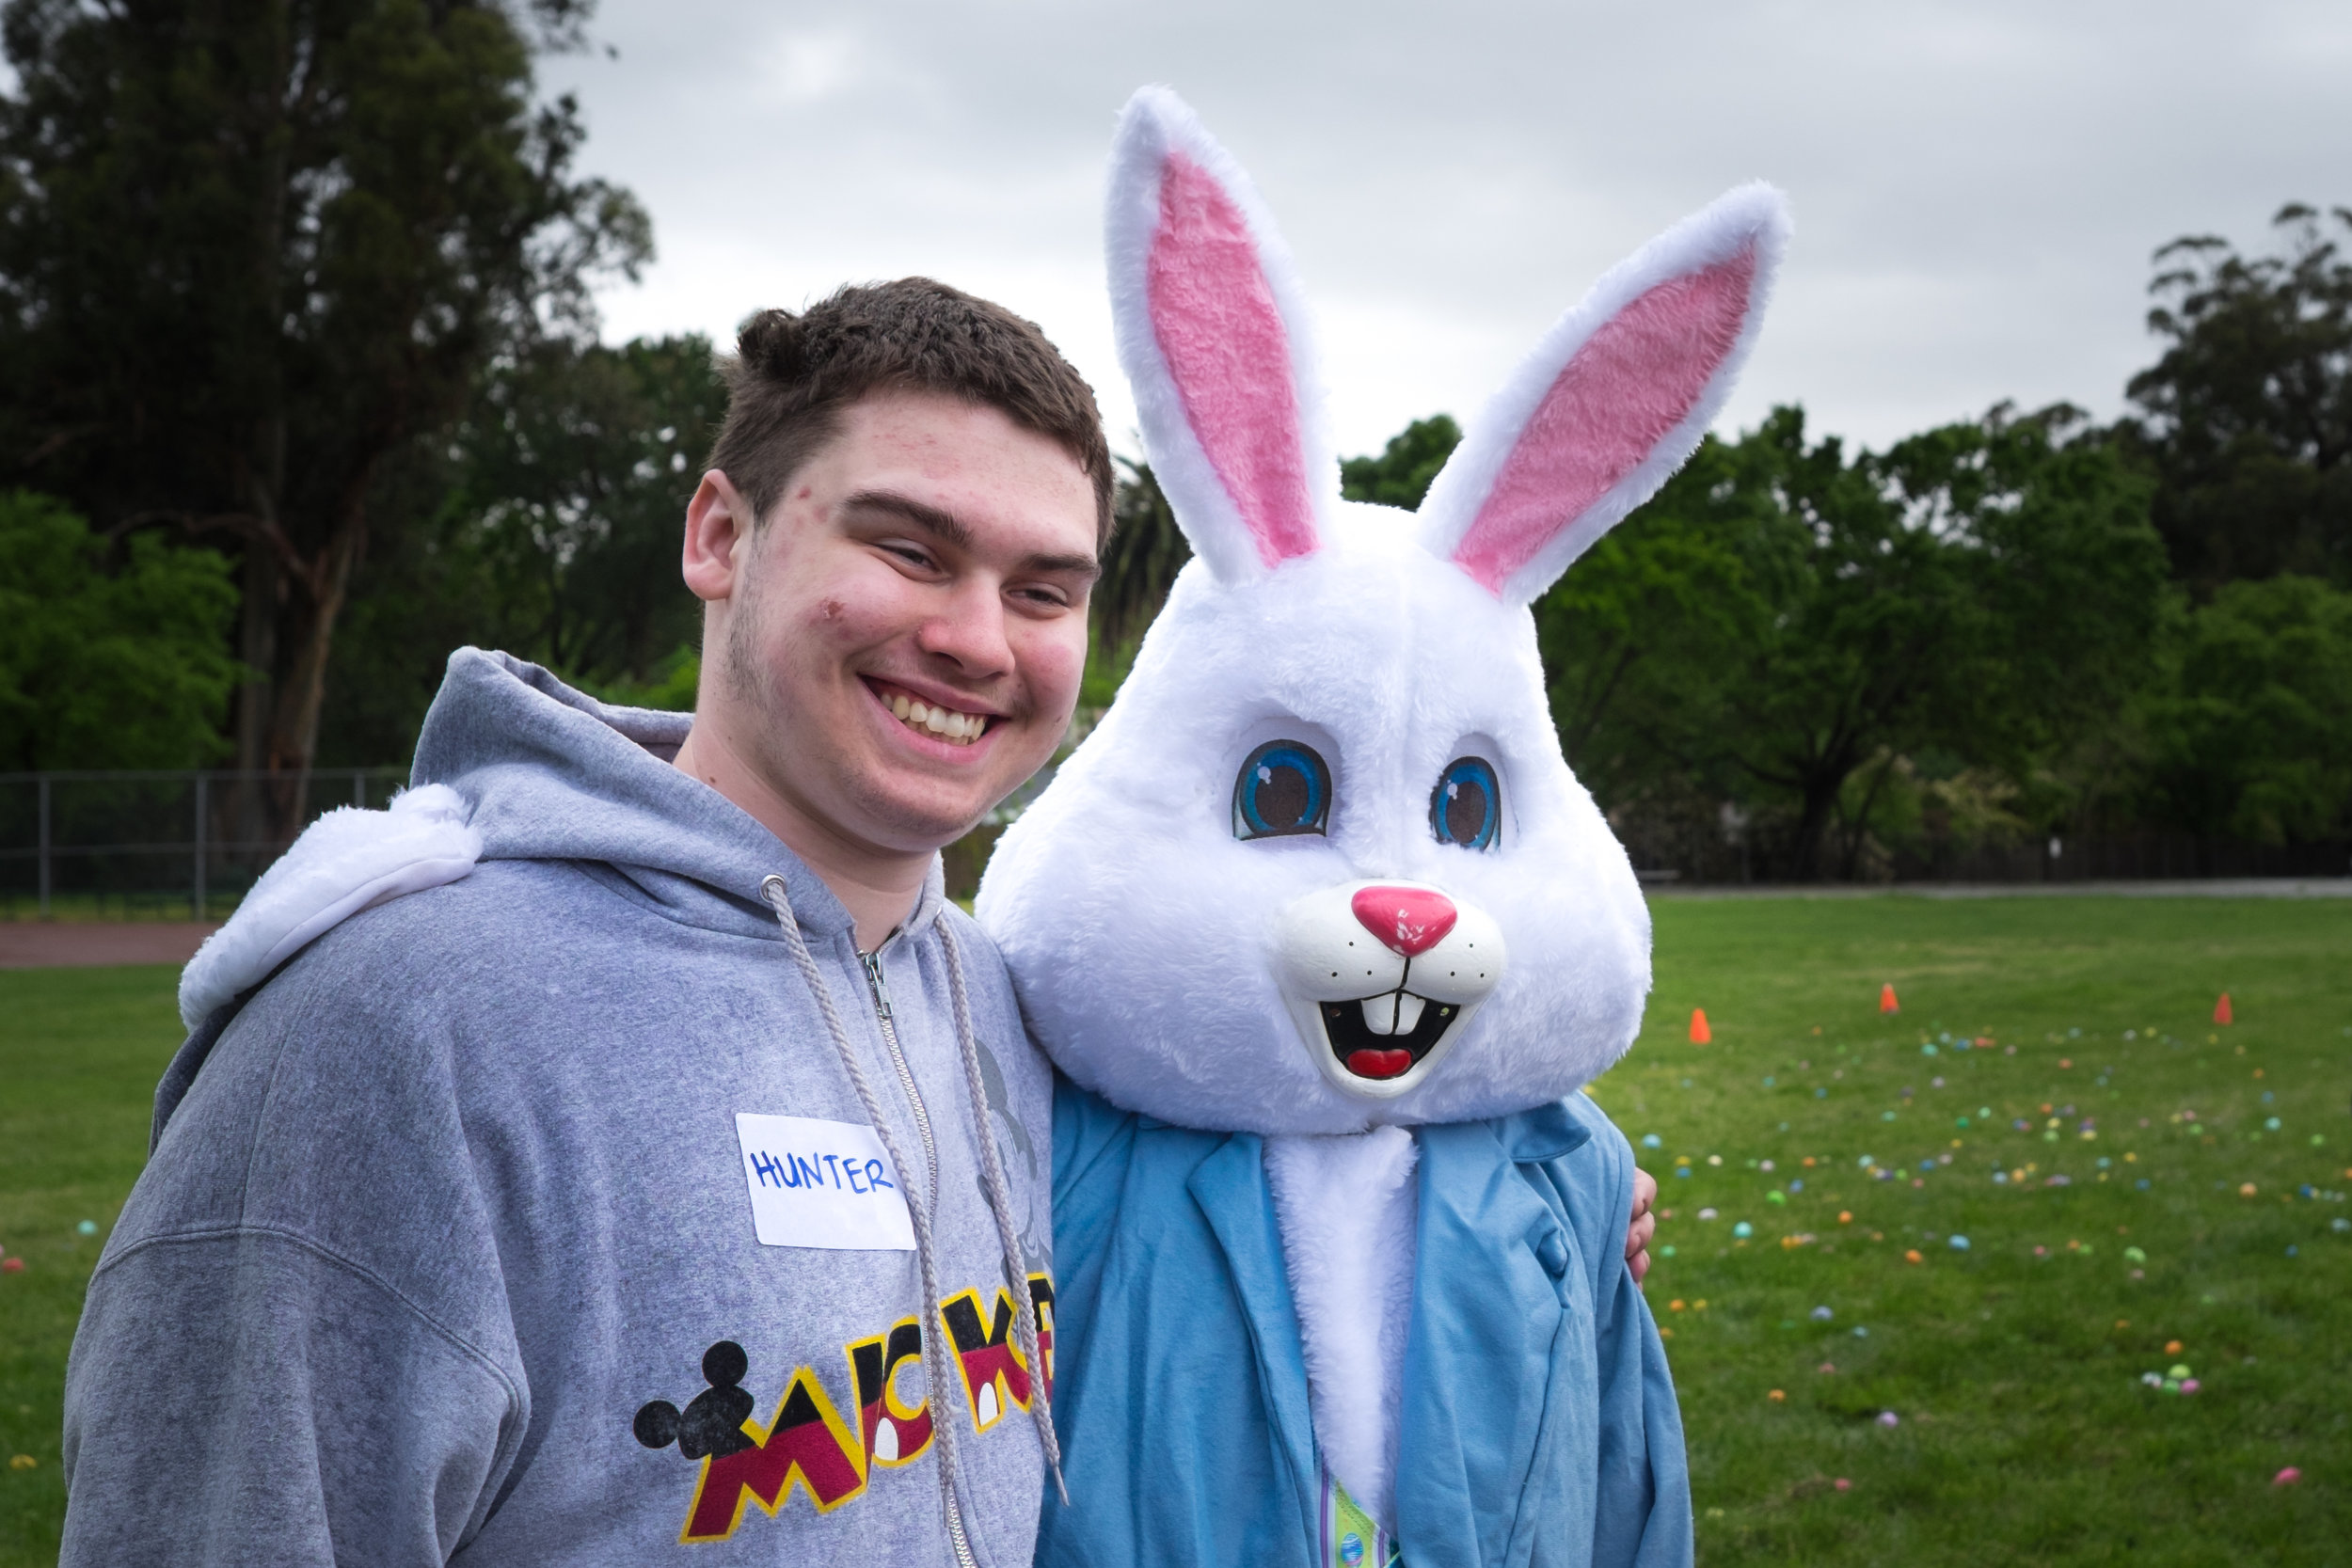 Egg-treme Hunt - Join All in Need children and parents as the kids hunt for the 1200 hidden eggs, and parents enjoy a chance to network with one another.